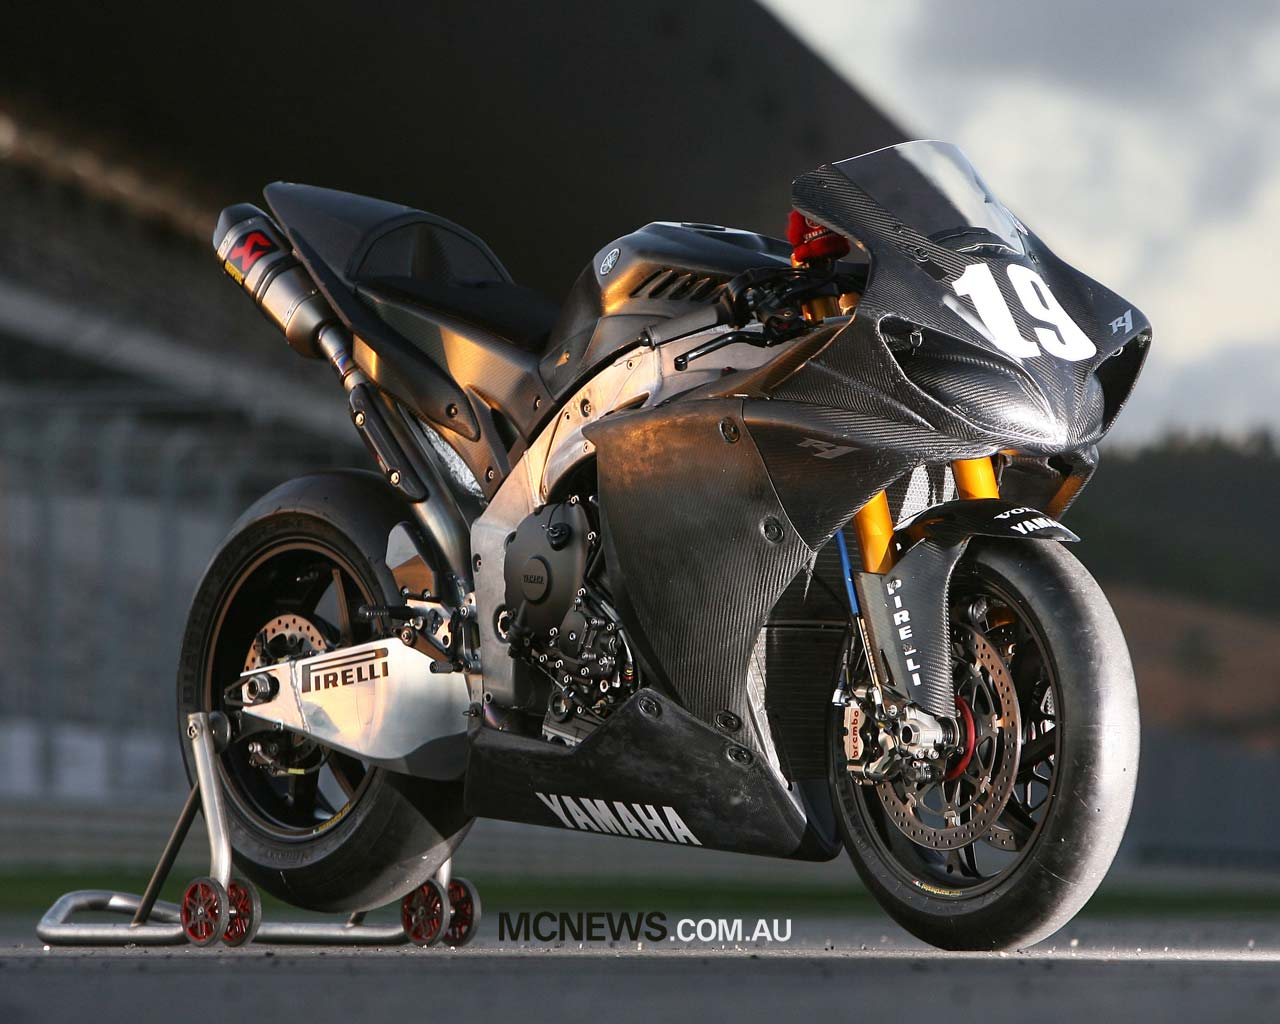 Yamaha R1 Superbike Wallpapers on 2010 kawasaki ninja 1000